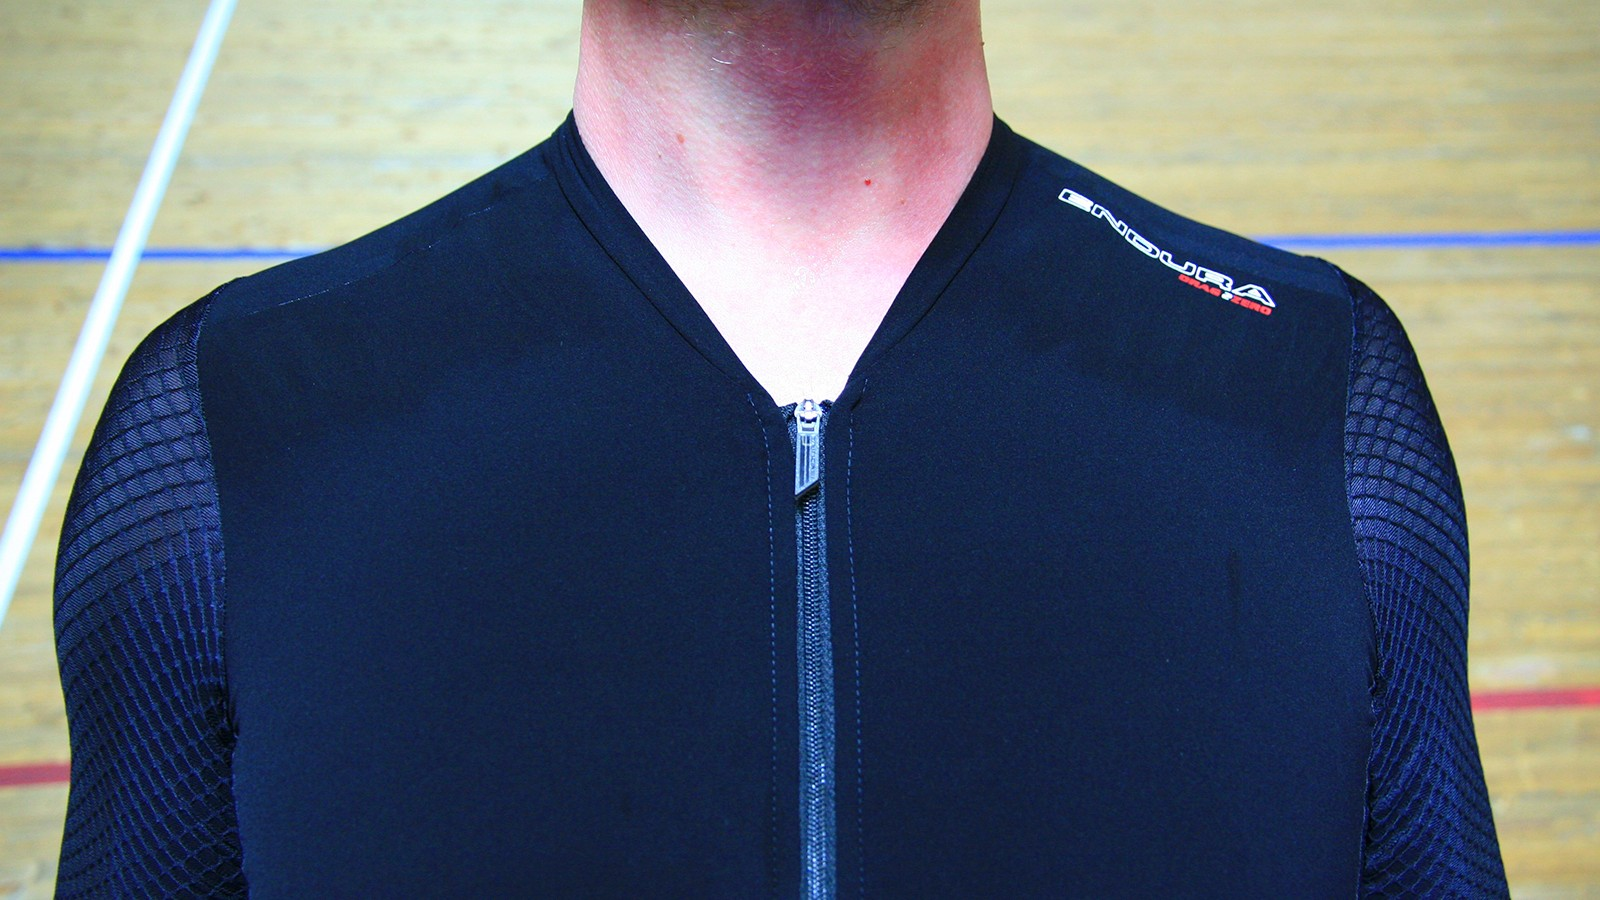 The zip is cut low under the neck, and proved comfortable